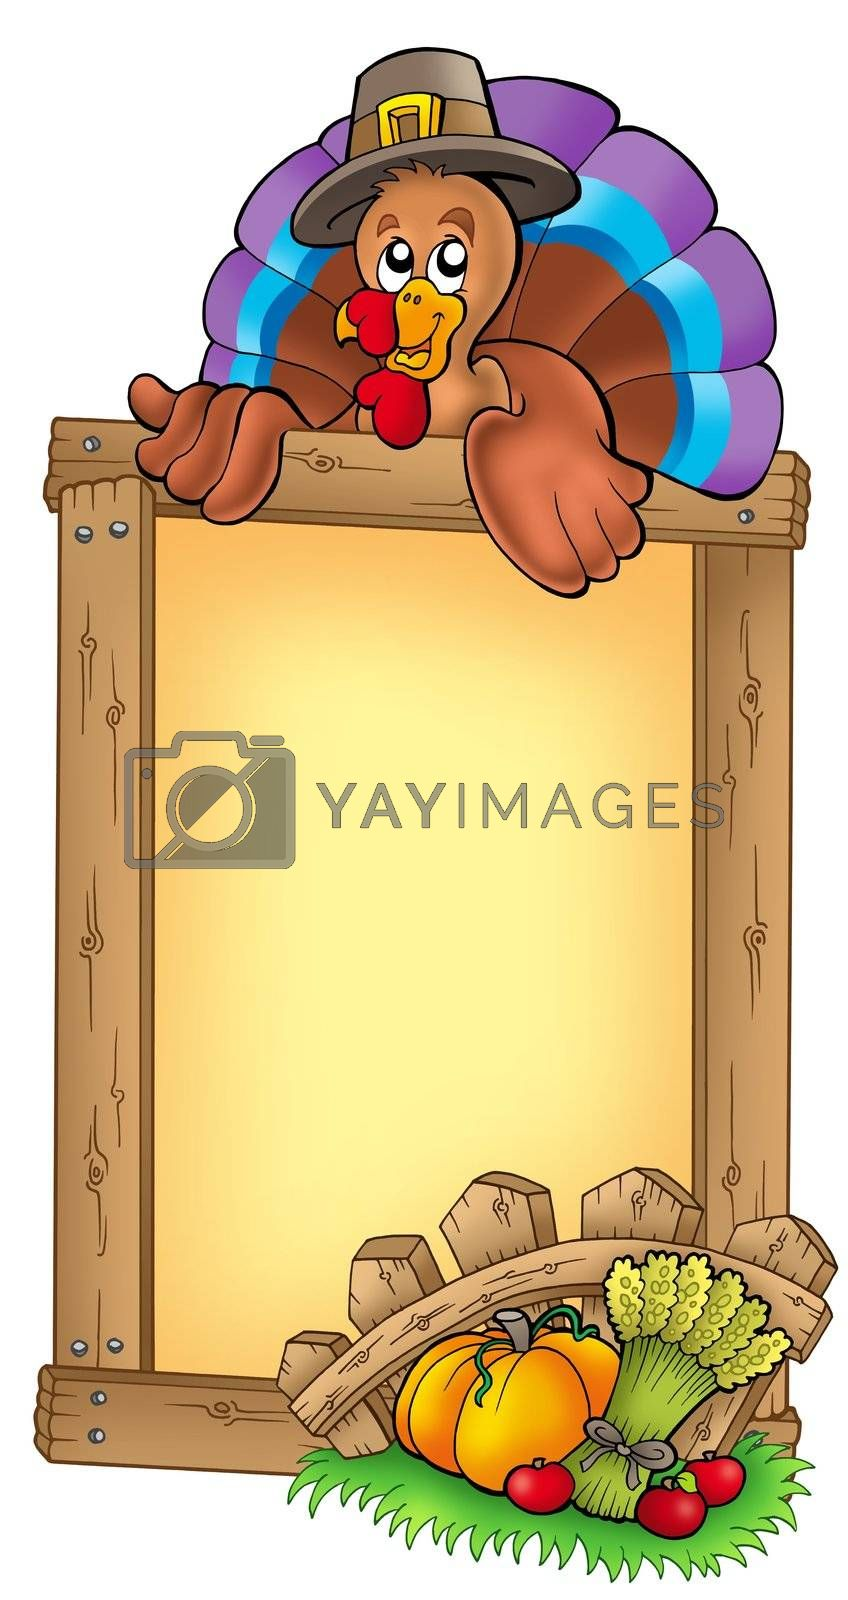 Wooden frame with lurking turkey - color illustration.